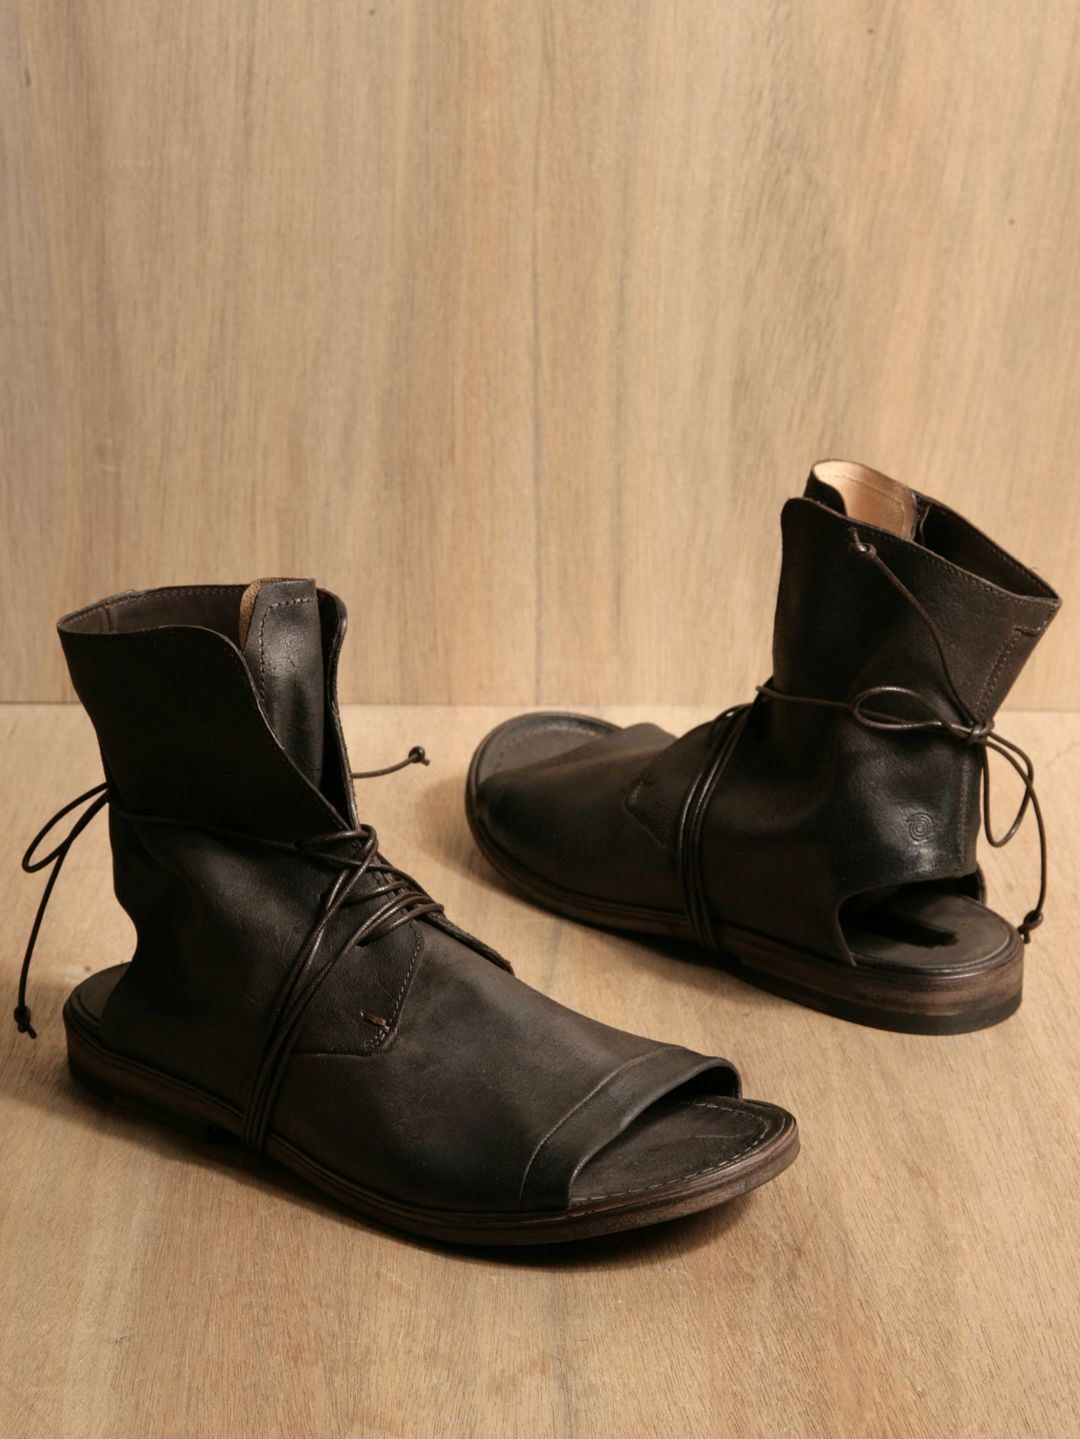 Enjoy free shipping and easy returns every day at Kohl's. Find great deals on Mens Ankle Boots at Kohl's today!